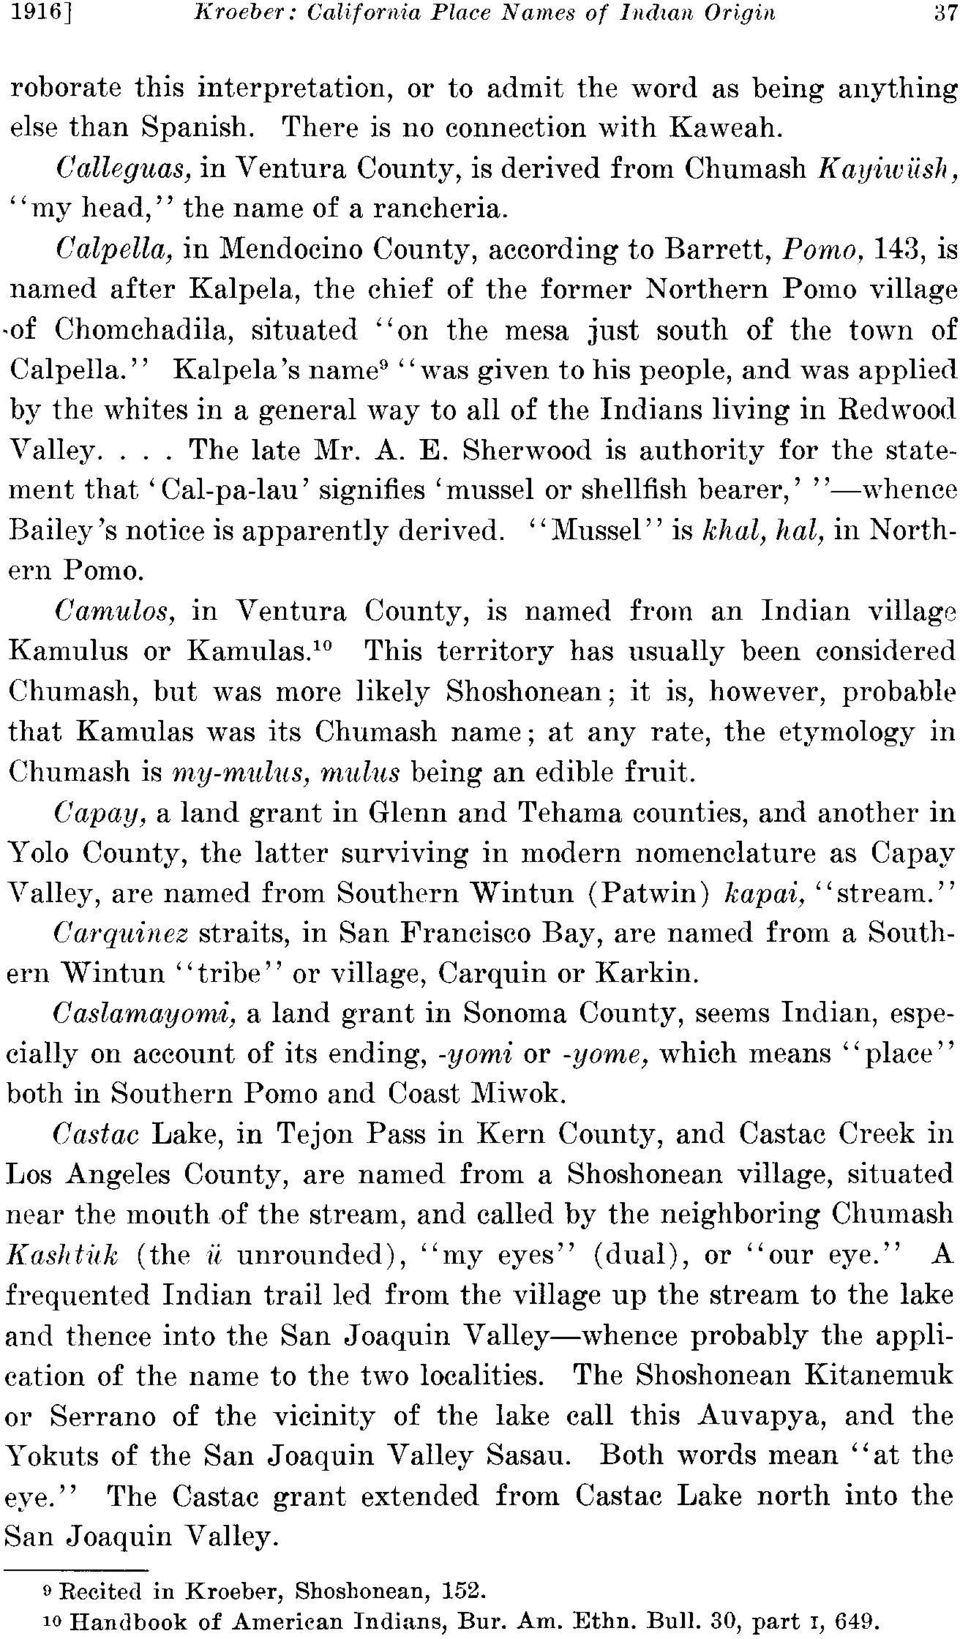 Calpella, in Mendocino County, according to Barrett, Pomo, 143, is named after Kalpela, the chief of the former Northern Pomo village.